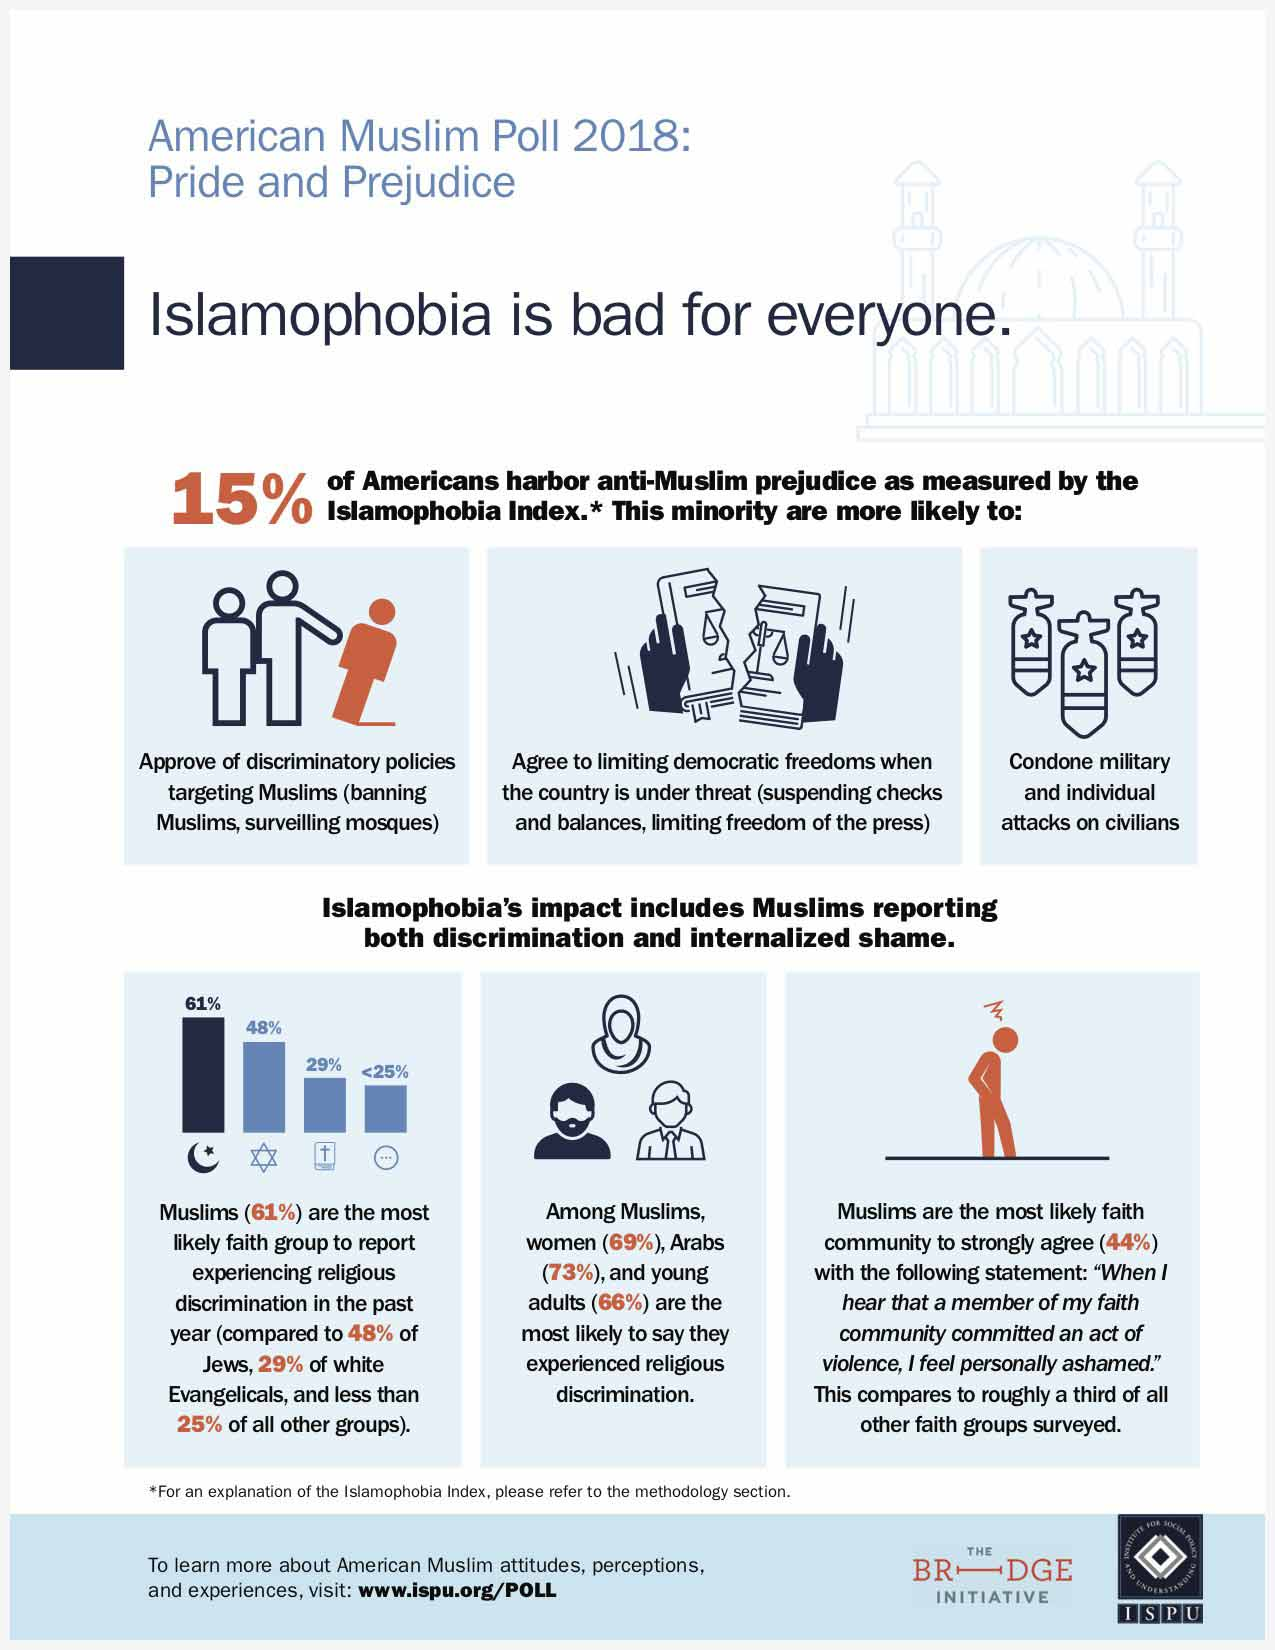 Islamophobia is bad for everyone infographic